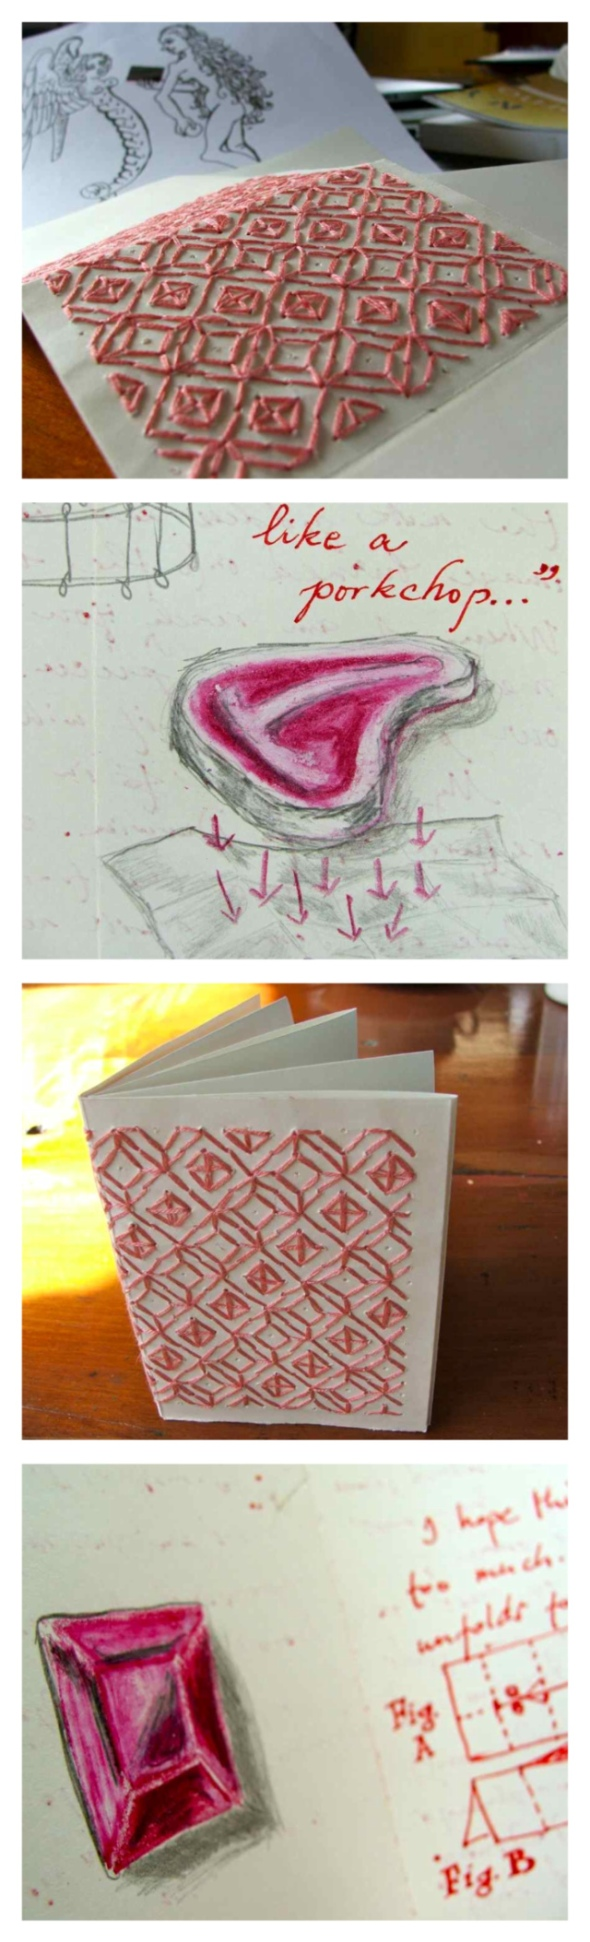 embroidery on paper, a letter for the artist Agnes Arellano